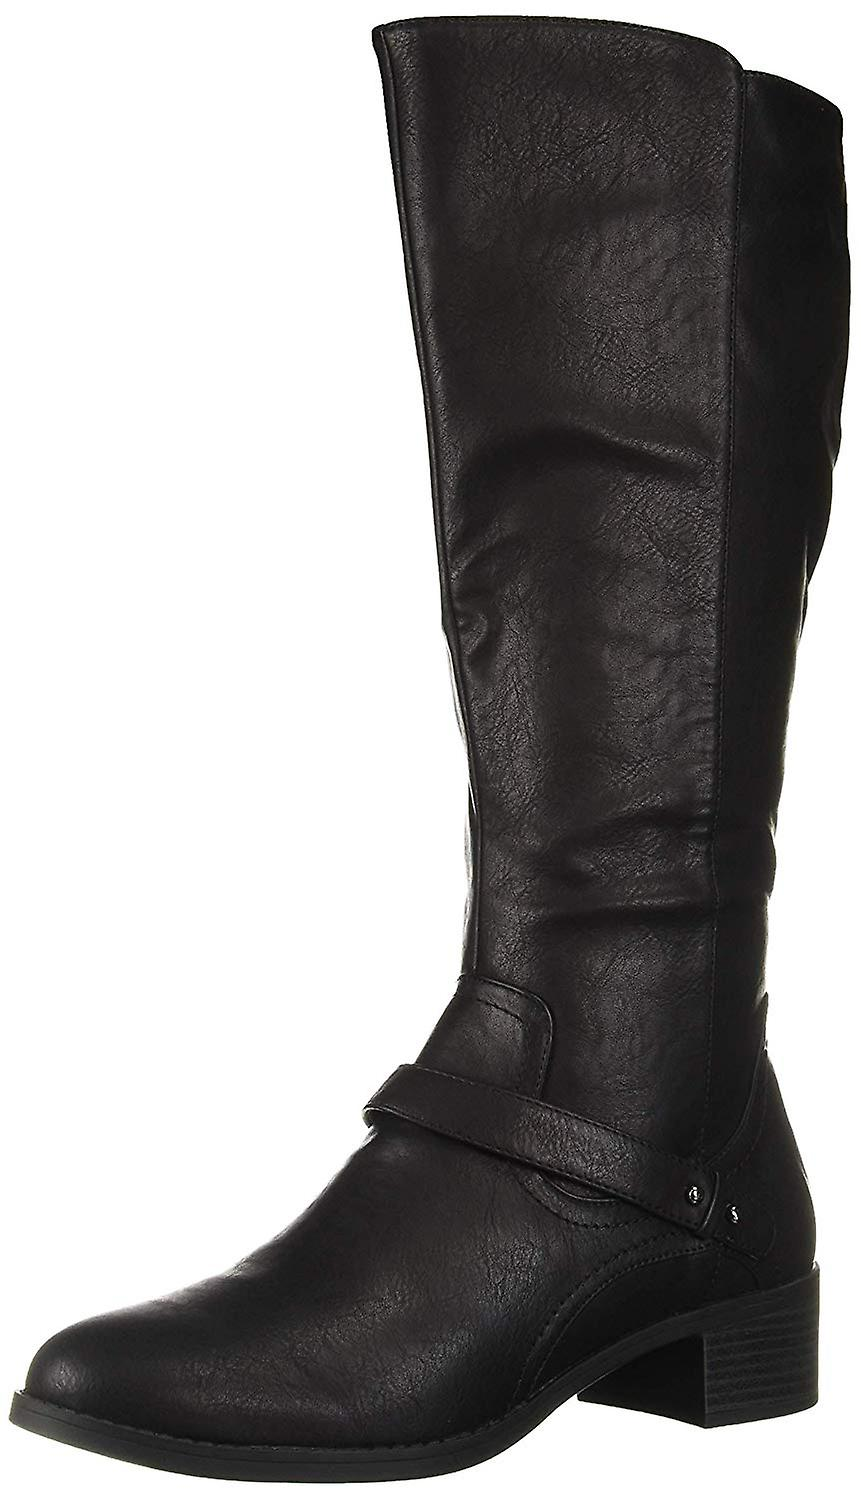 Easy Street Womens 30-9556 Almond Toe Knee High Riding Boots dwCpN